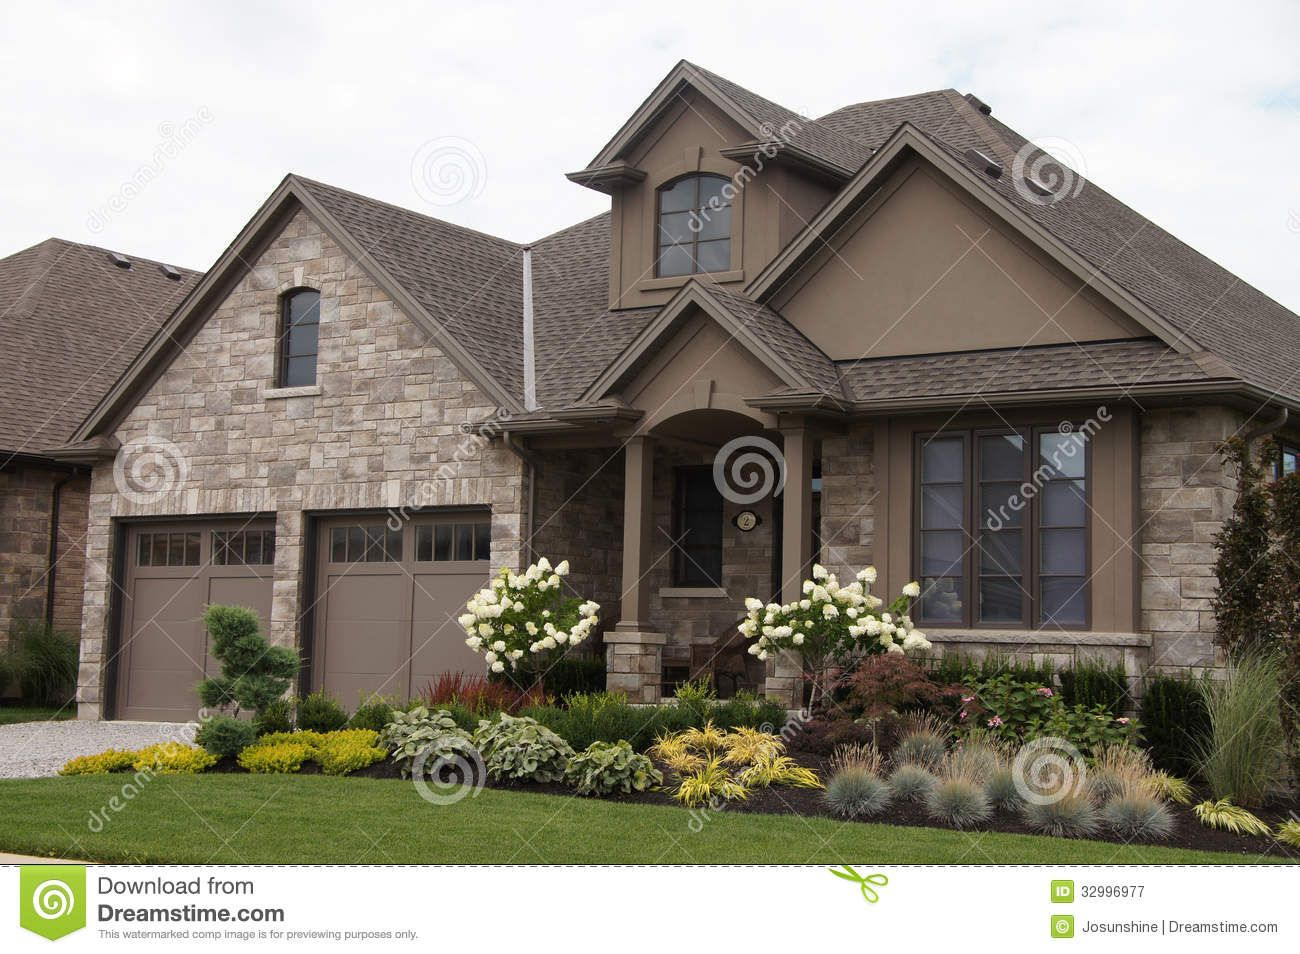 Stucco homes stucco stone house pretty garden royalty - Painting a stucco house exterior ...